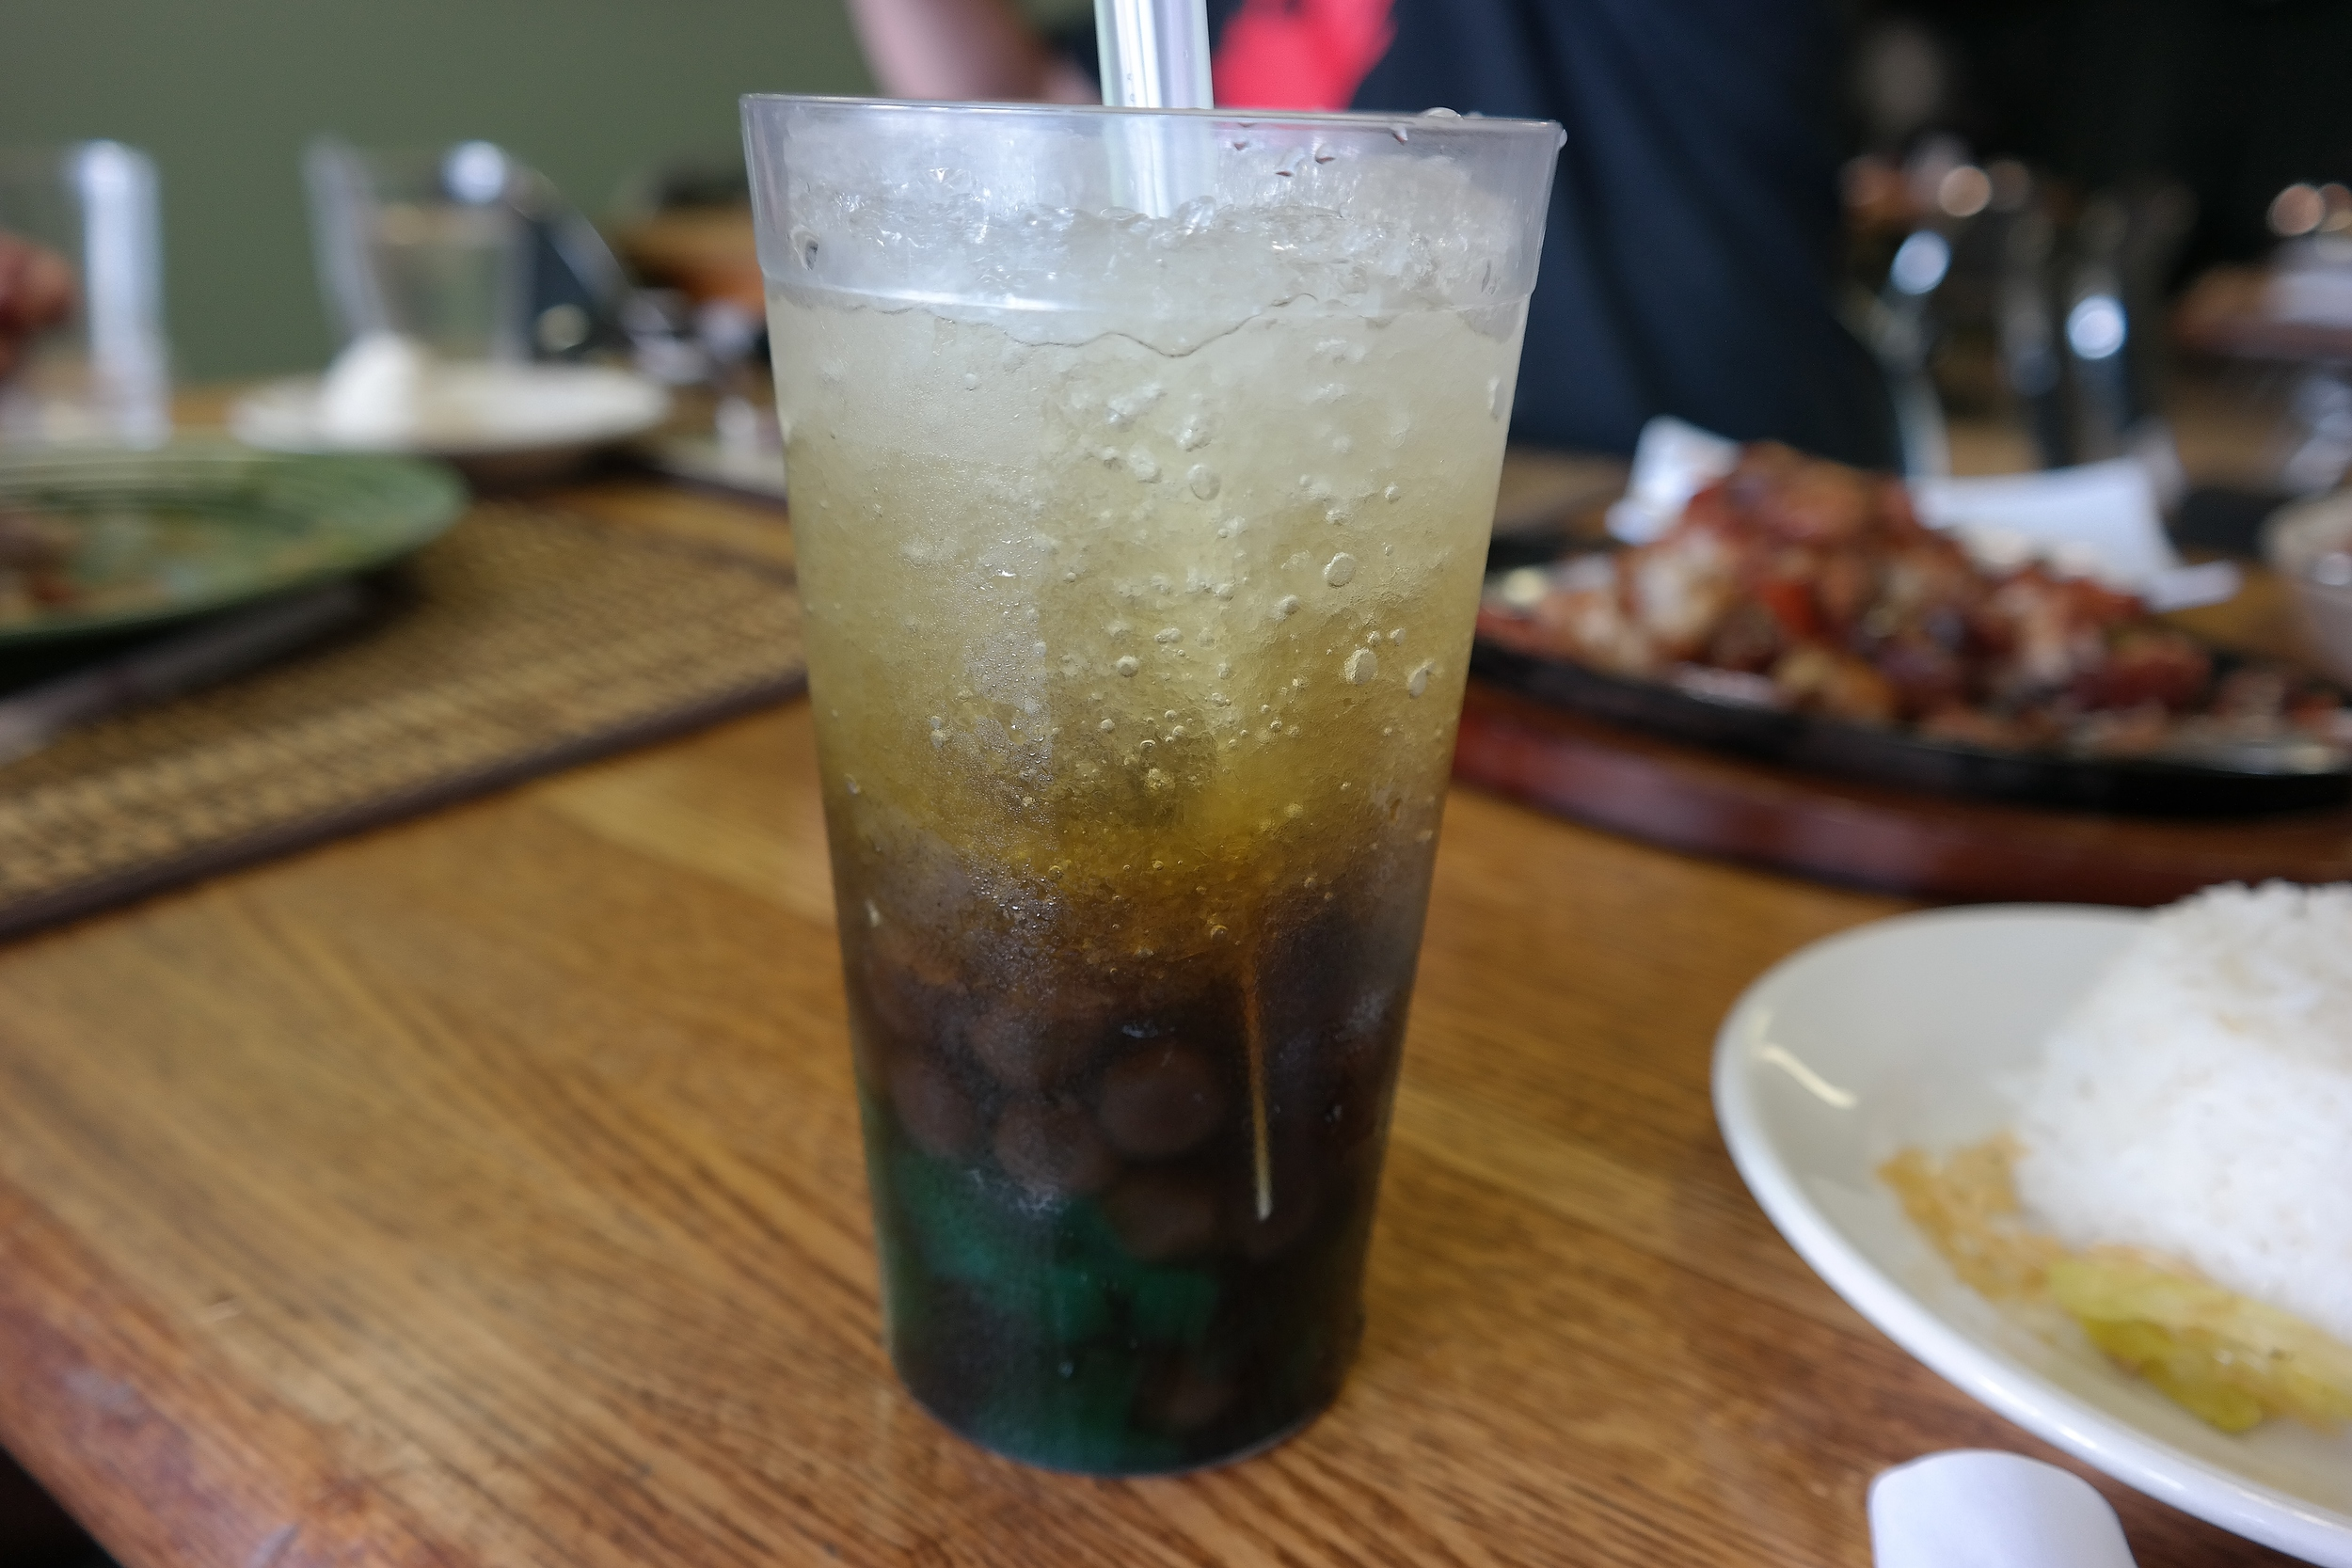 Sago at gulaman (a Filipino drink with gelatin, tapioca pearls, crushed ice).